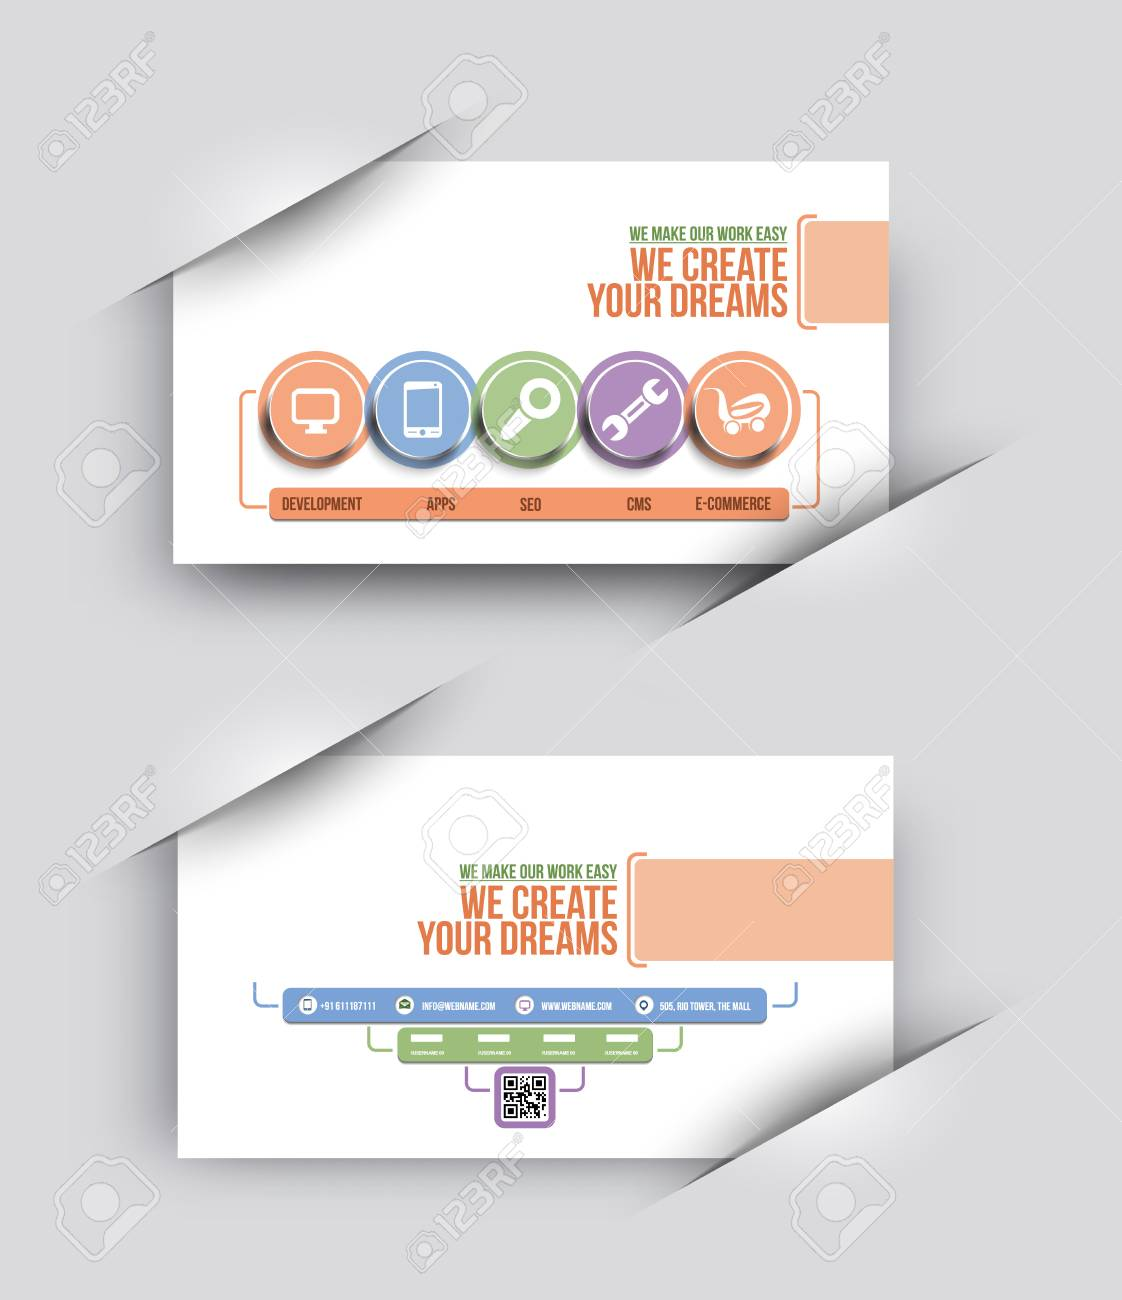 Tech multipurpose business card template royalty free cliparts tech multipurpose business card template stock vector 51158822 accmission Image collections